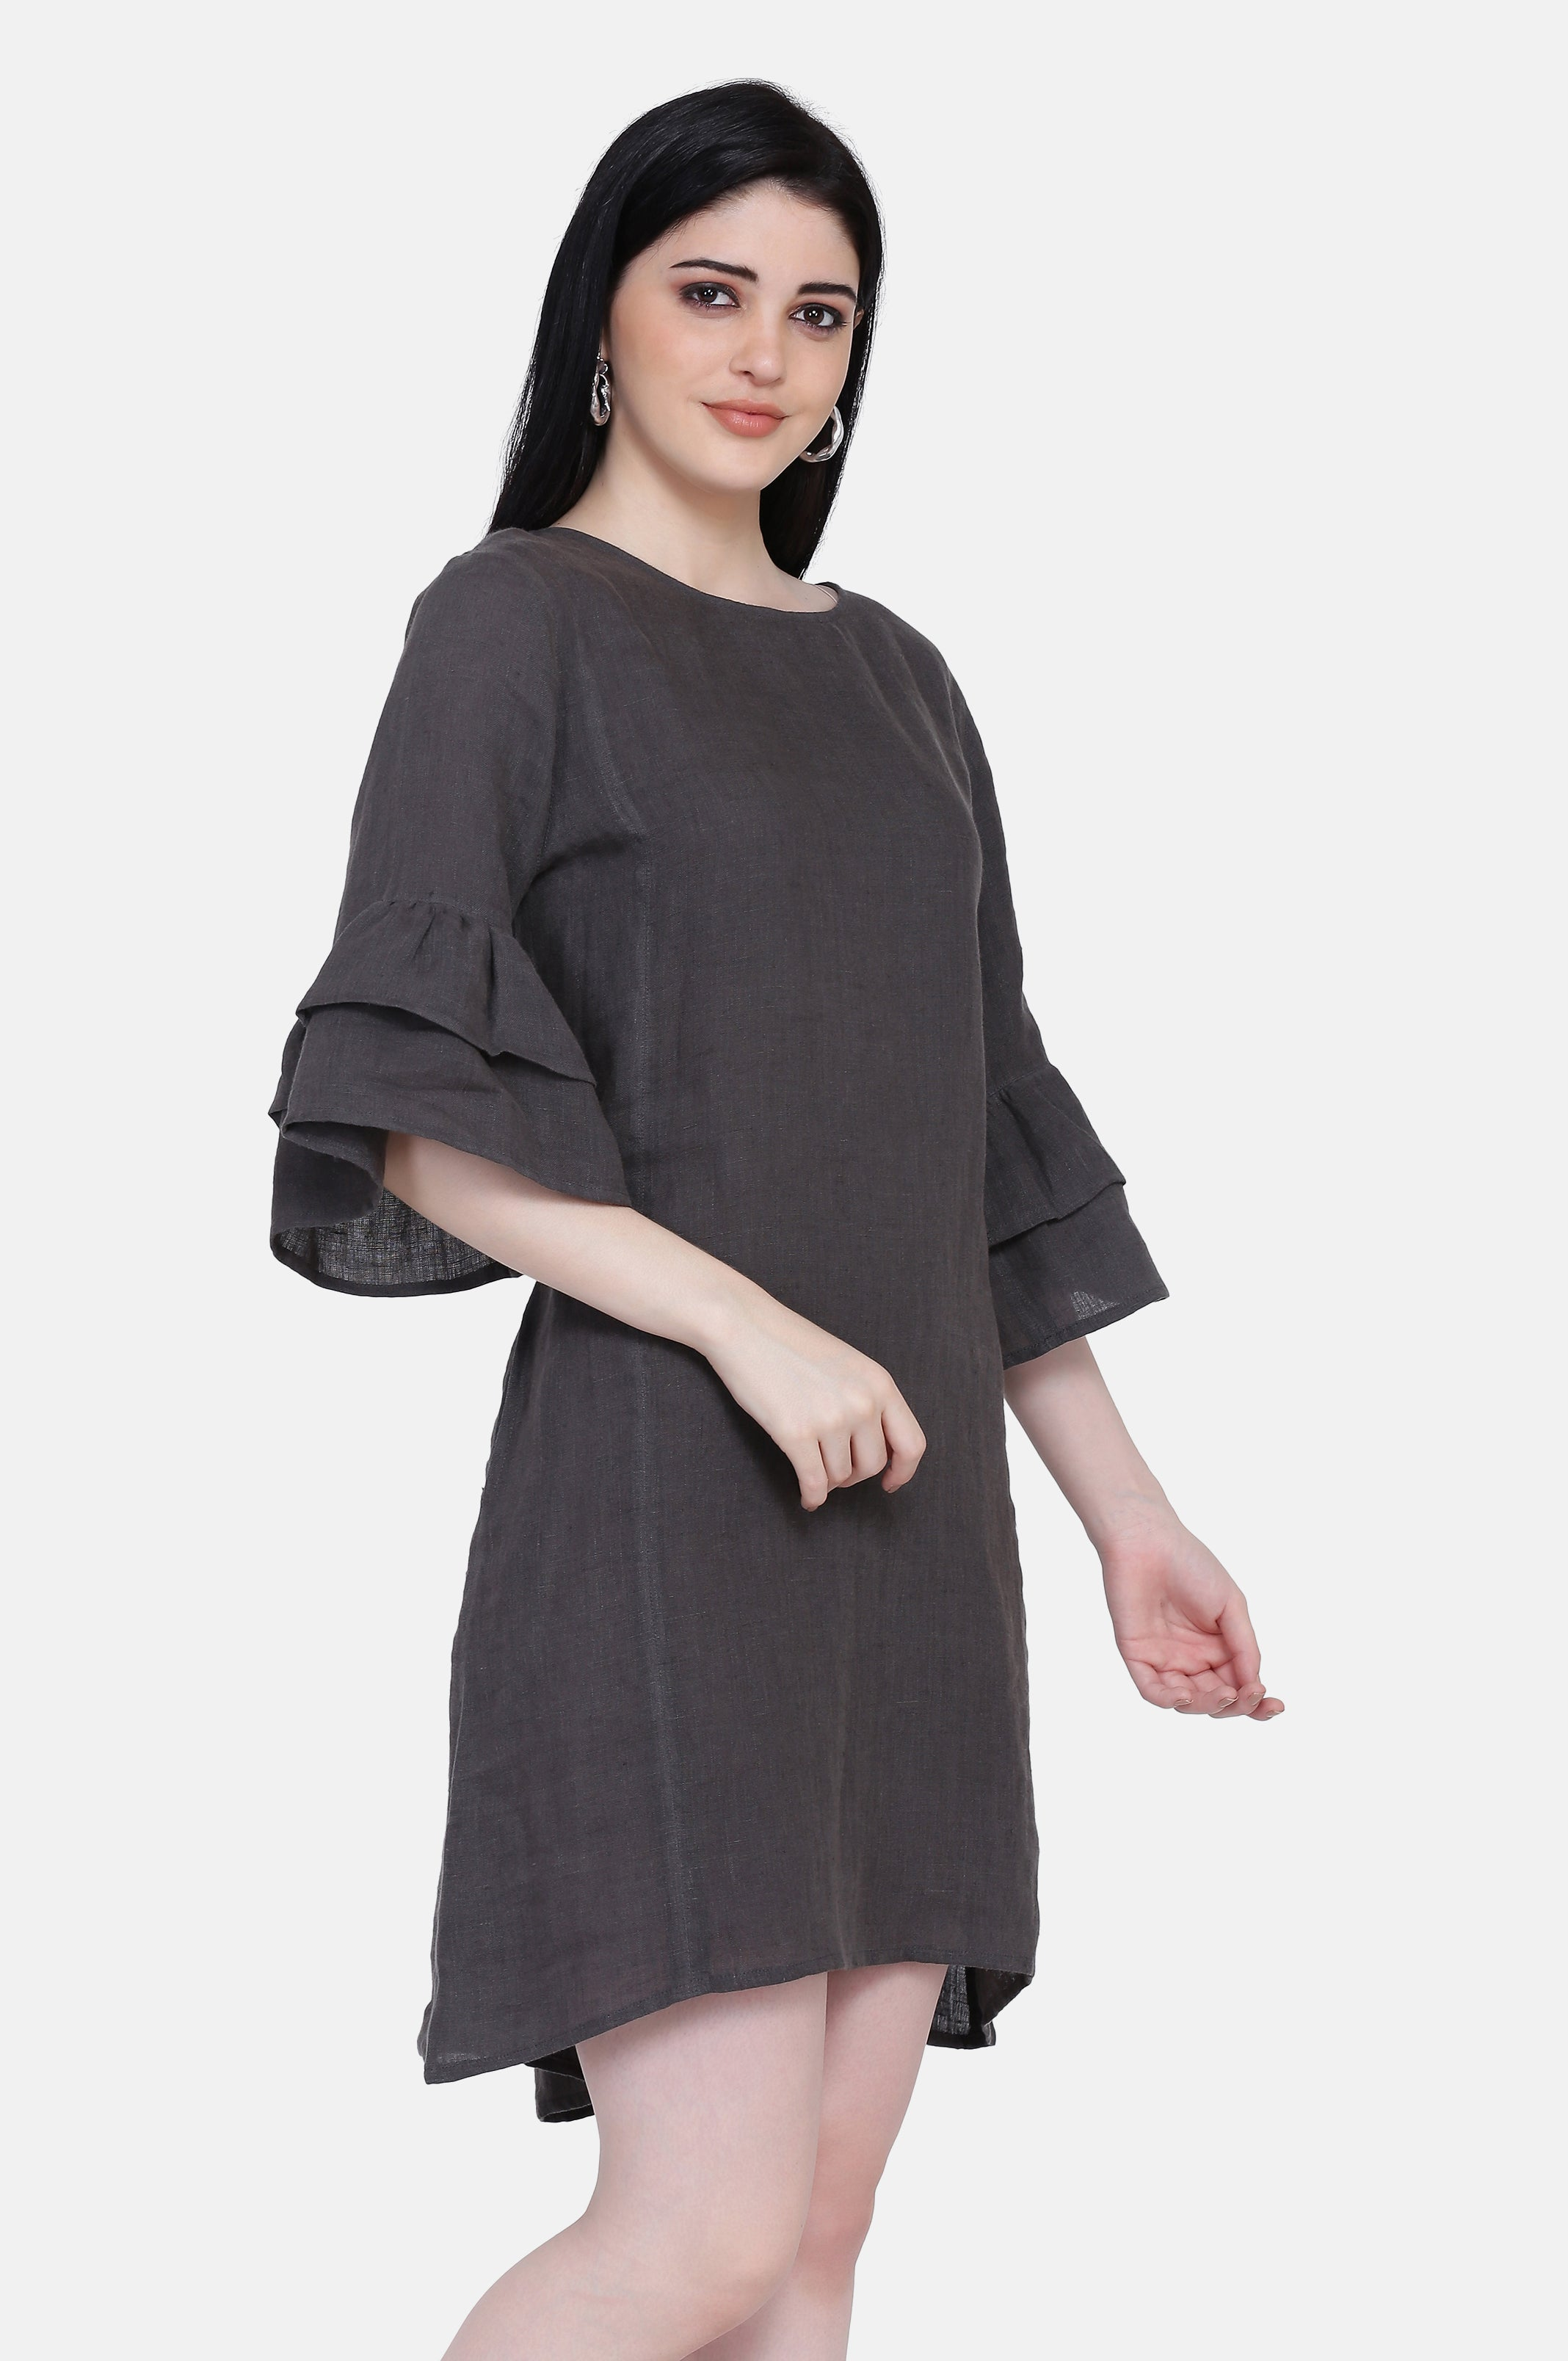 The Ivy Linen Dress